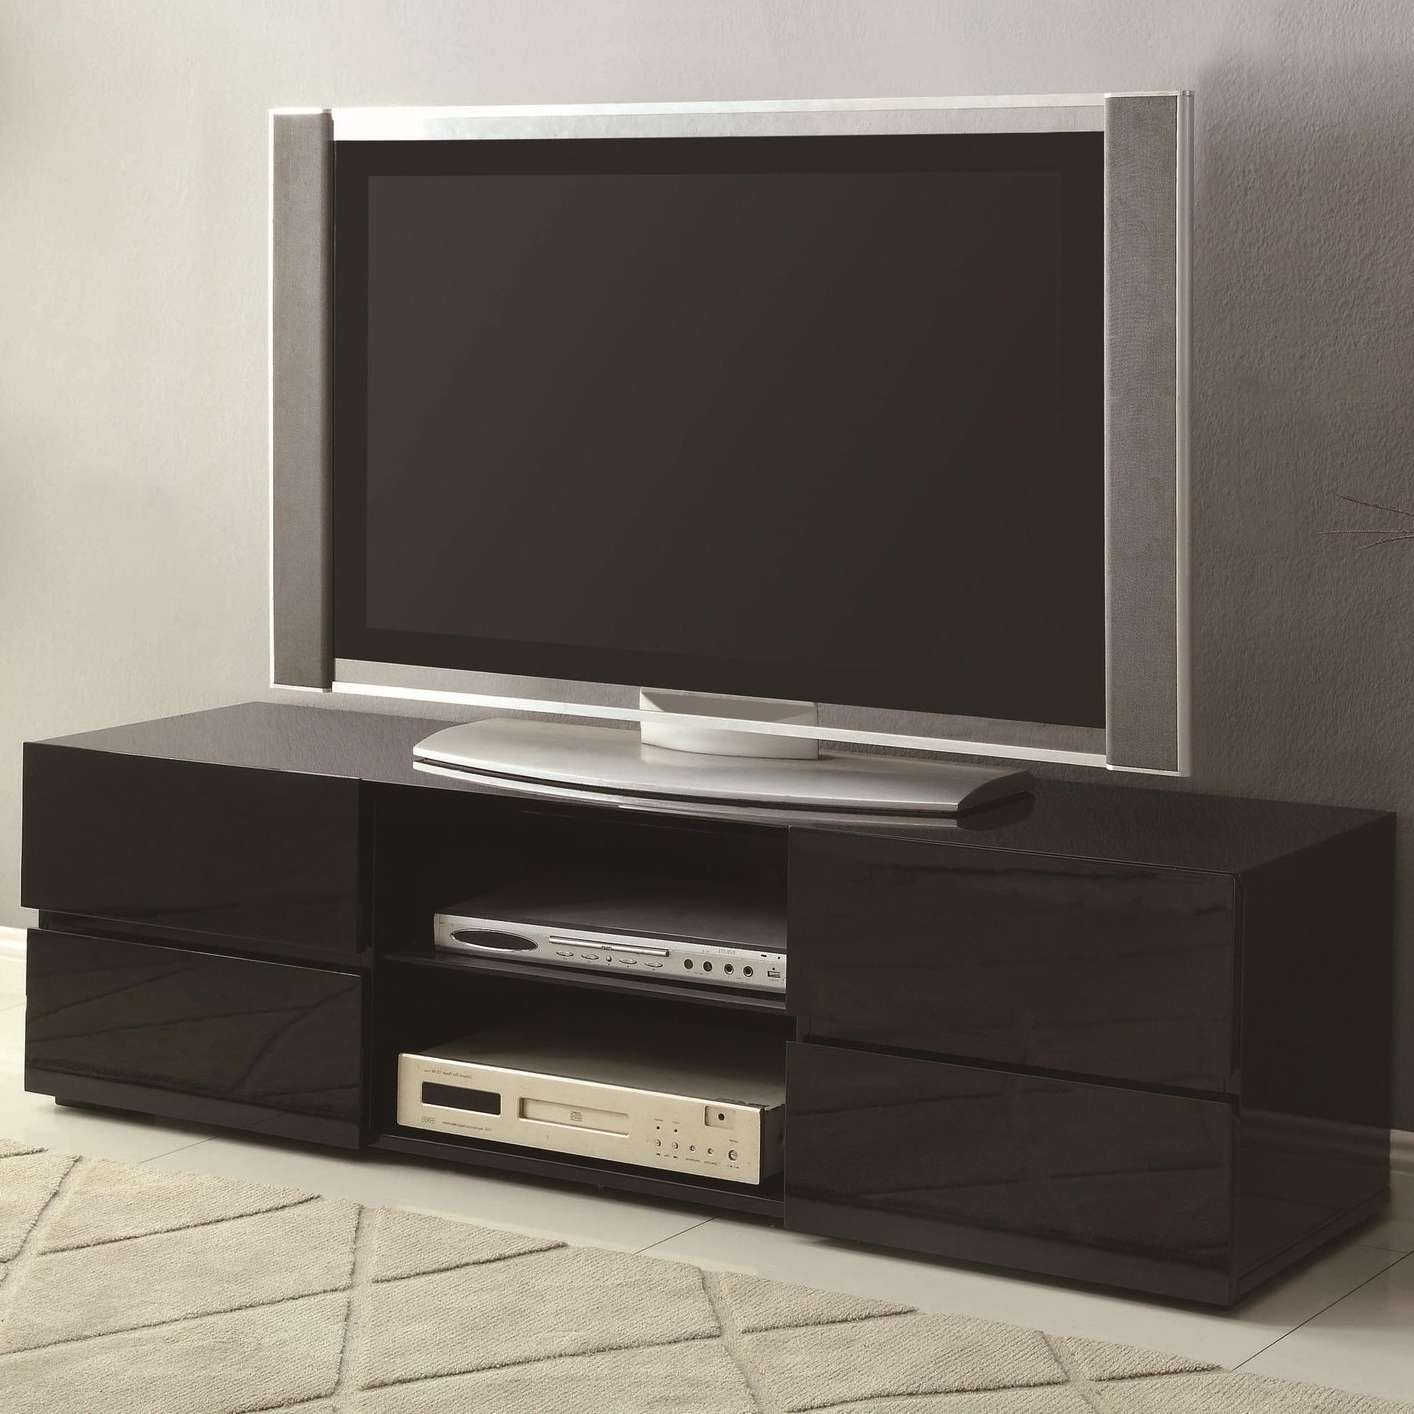 Black Wood Tv Stand – Steal A Sofa Furniture Outlet Los Angeles Ca Pertaining To Wood Tv Stands With Glass Top (View 13 of 15)